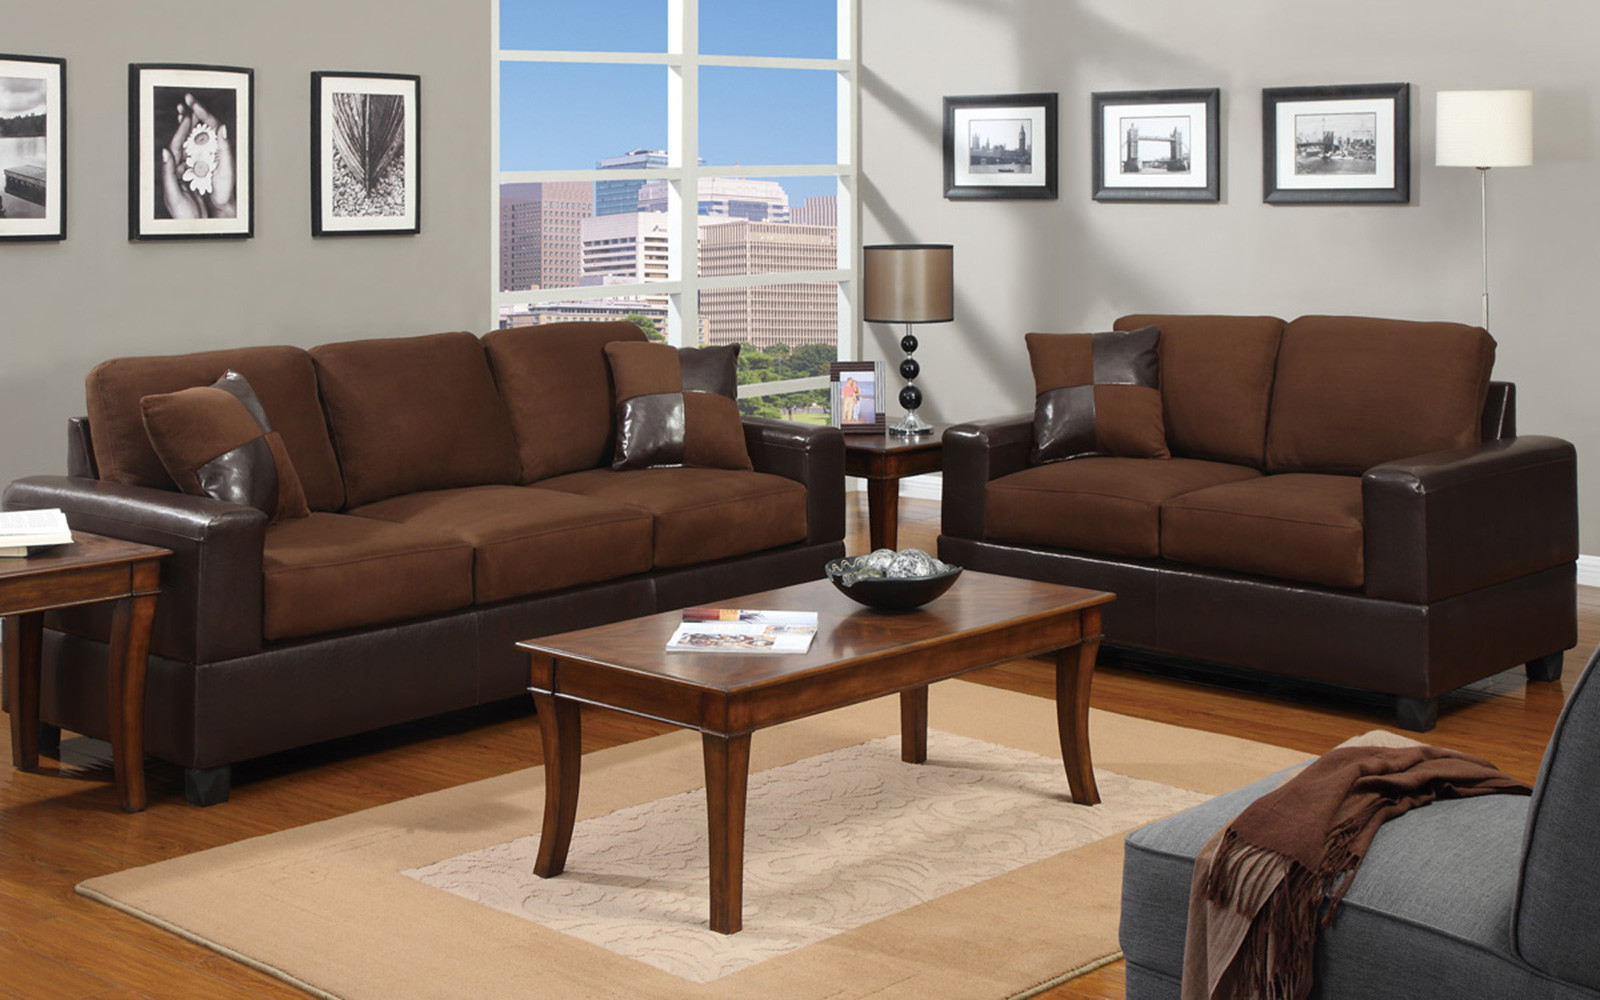 2 piece brown leather sofa donate in nyc modern microfiber and faux love seat livingroom set walmart com